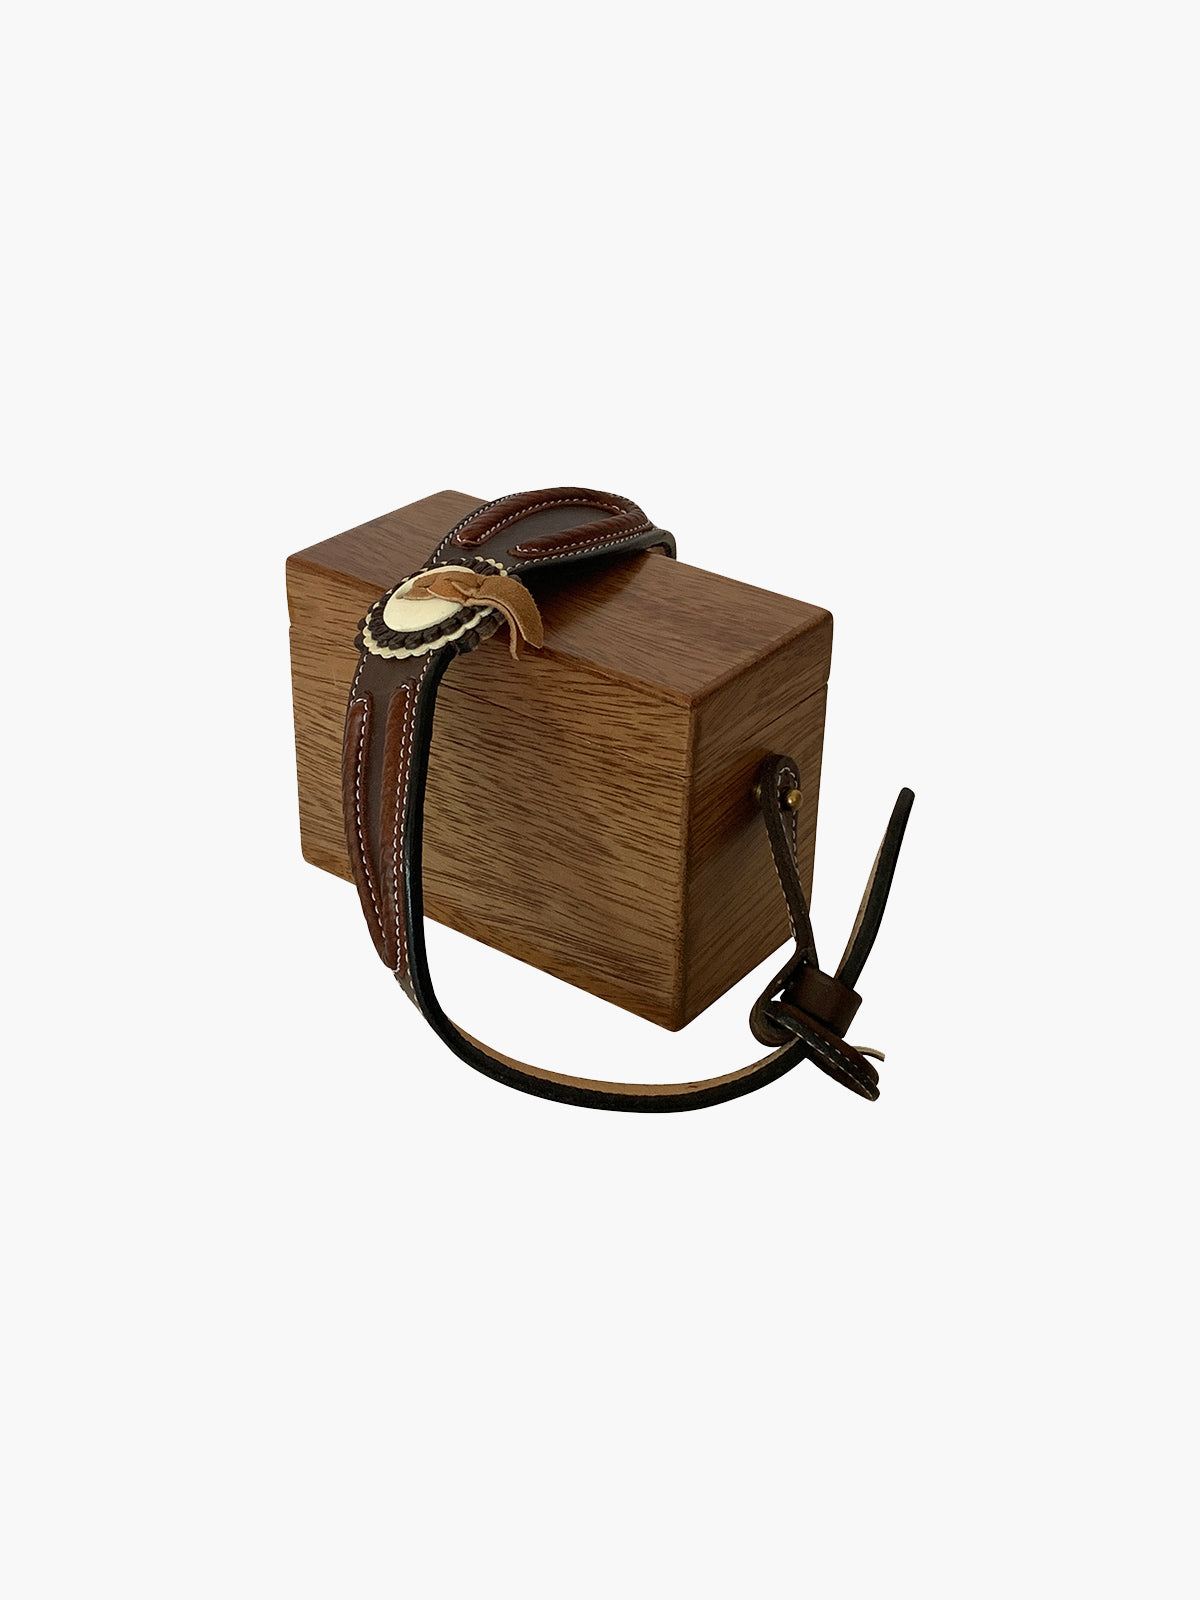 Ladrillo Box Bag | Tornillo Wood